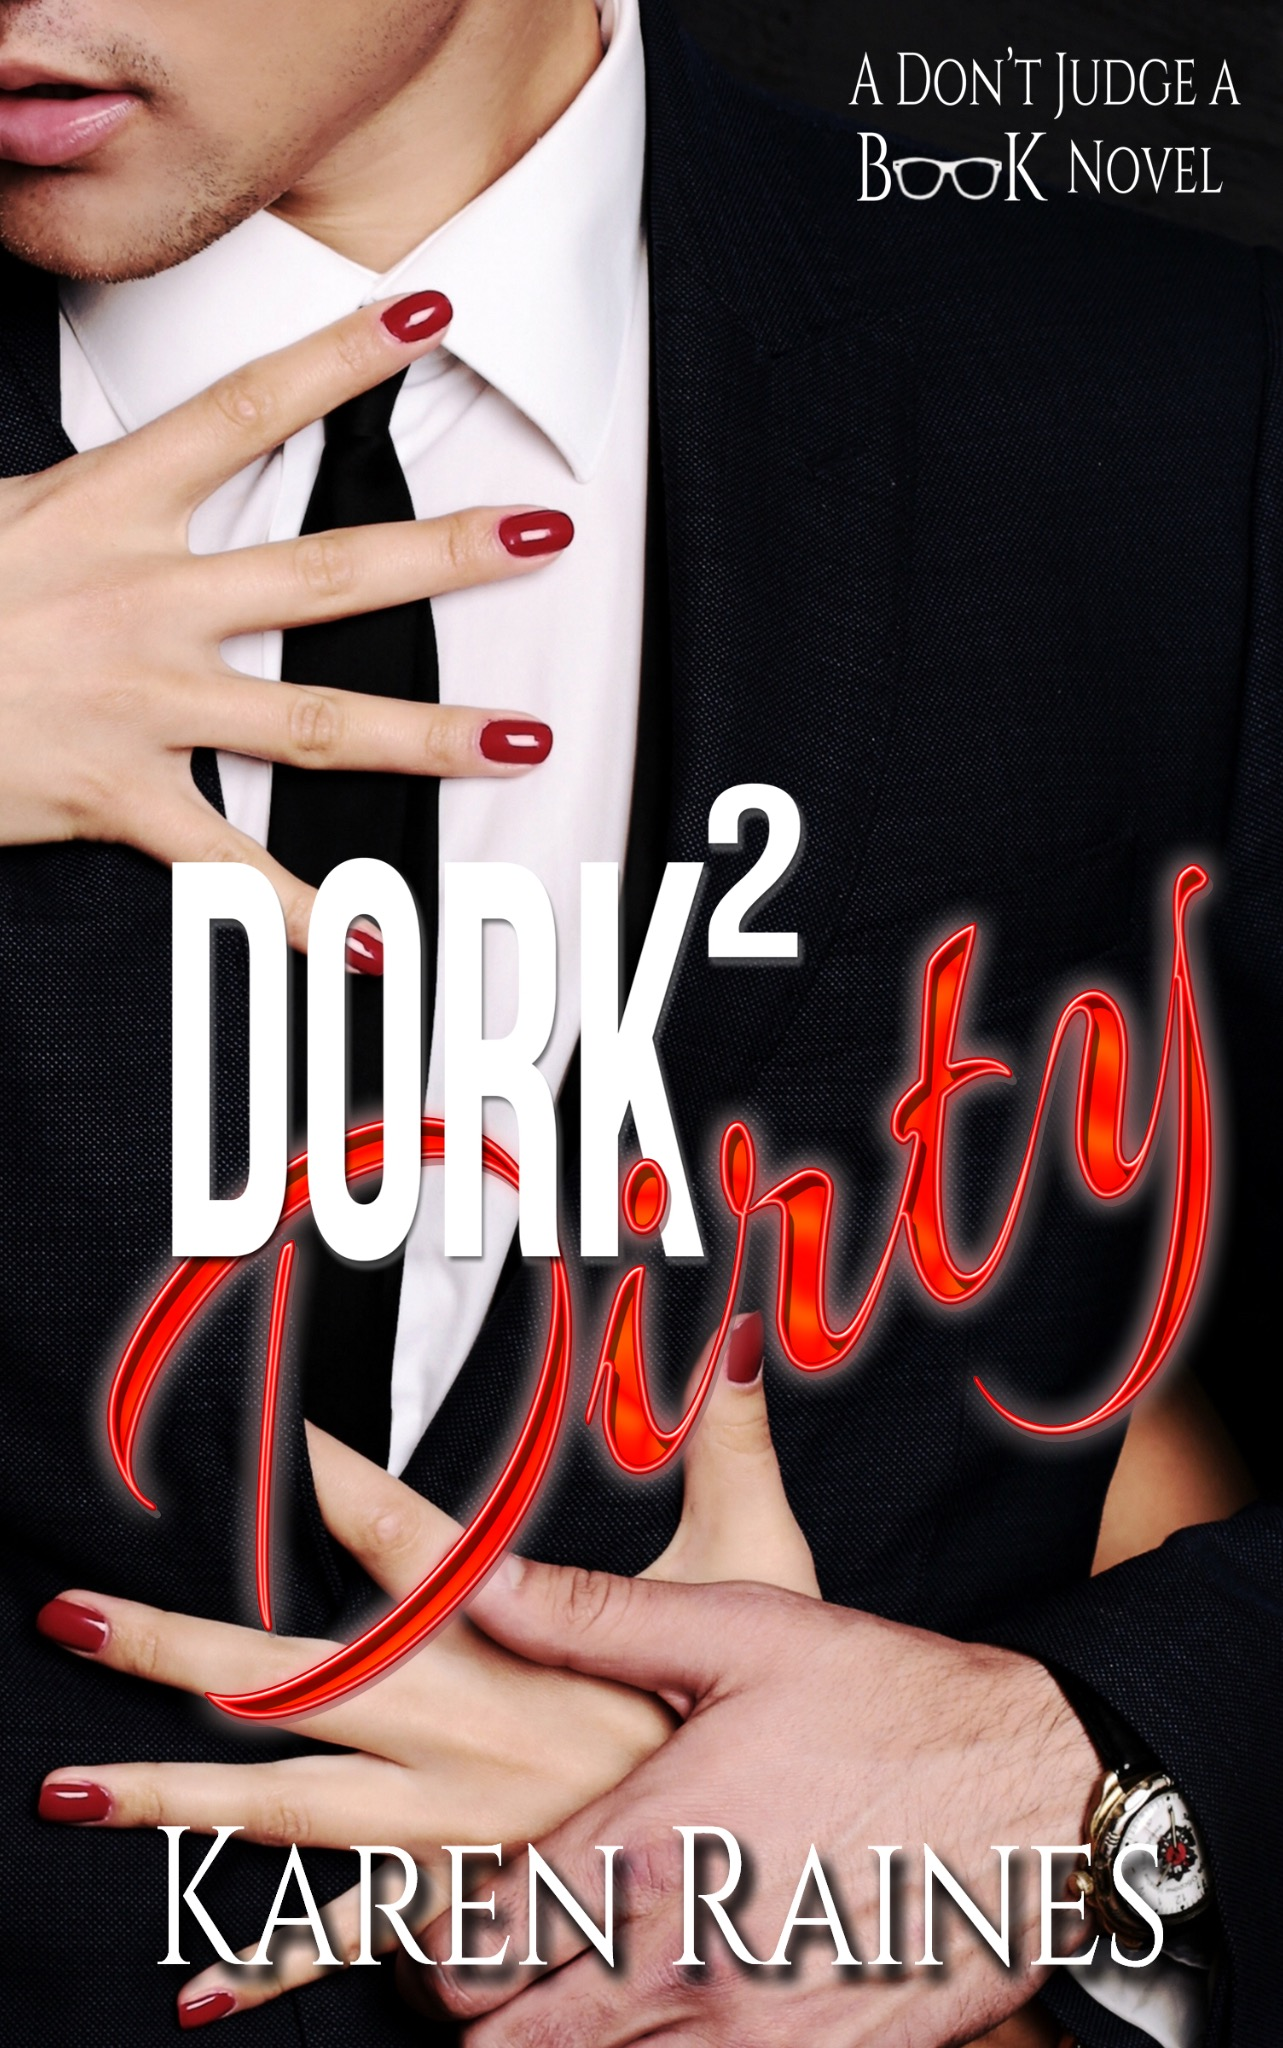 Dork 2 Dirty.ebook